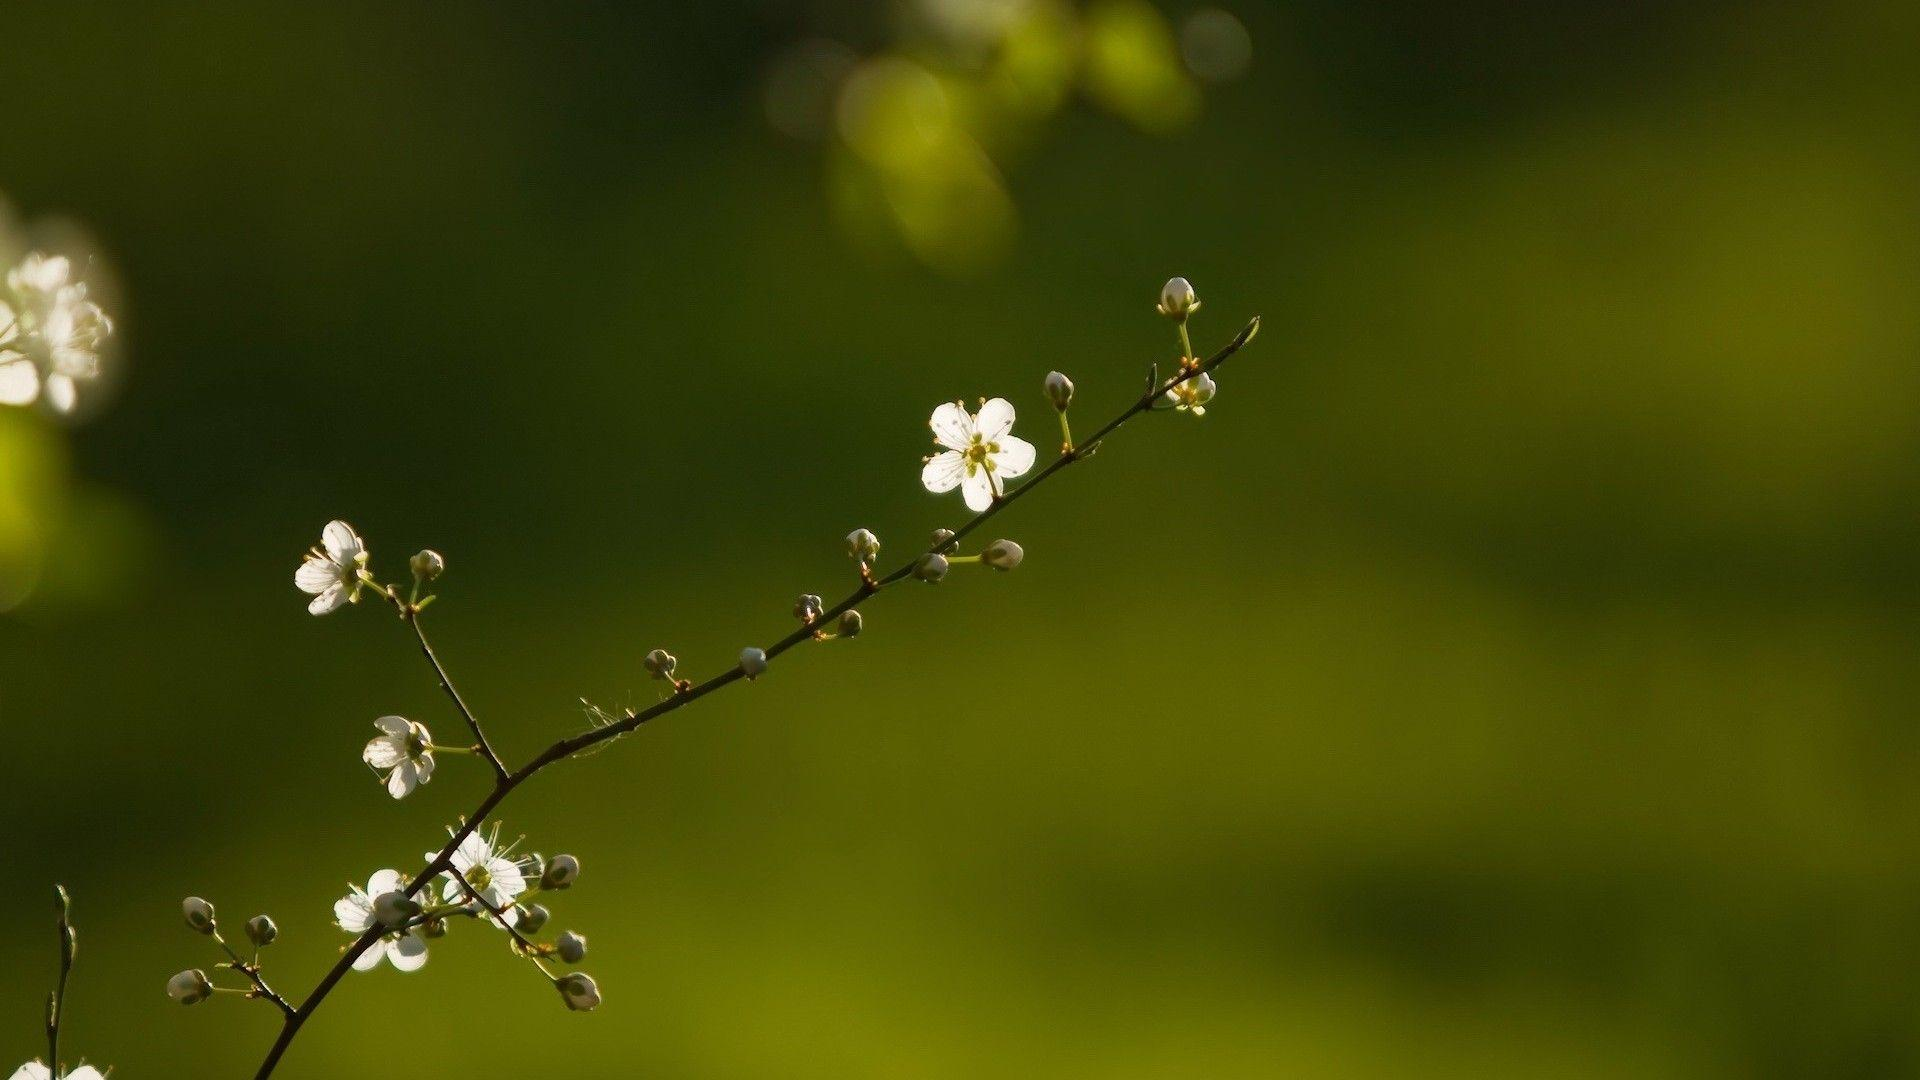 Beautiful Branch Of Flower tree hd wallpaper | HD Wallpapers ...